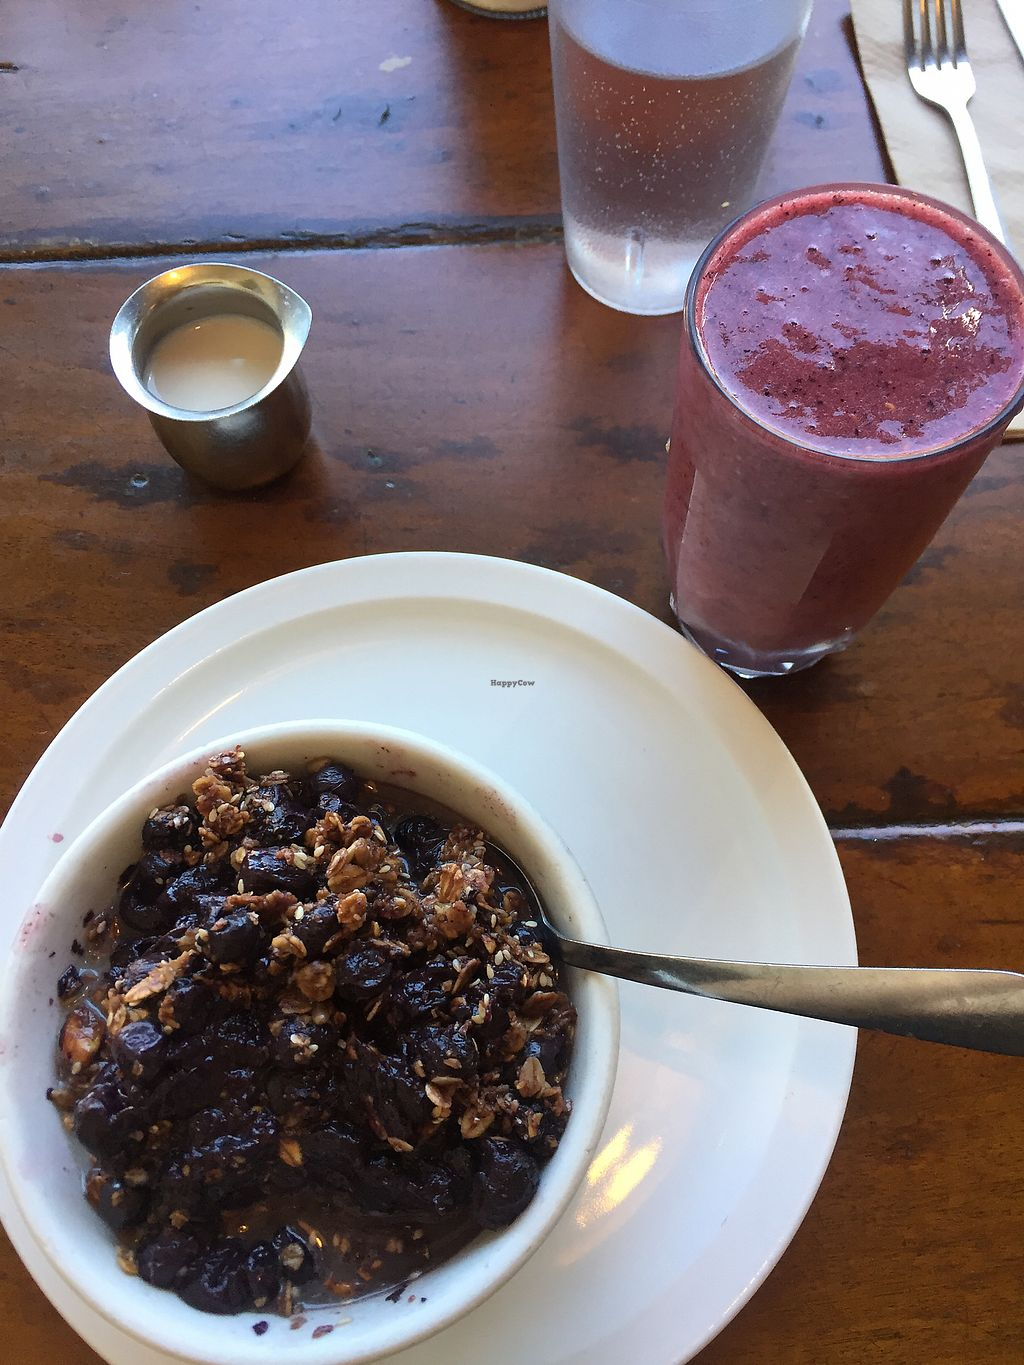 "Photo of The Naam  by <a href=""/members/profile/queendotkong"">queendotkong</a> <br/>granola and smoothie  <br/> June 28, 2017  - <a href='/contact/abuse/image/1269/274419'>Report</a>"